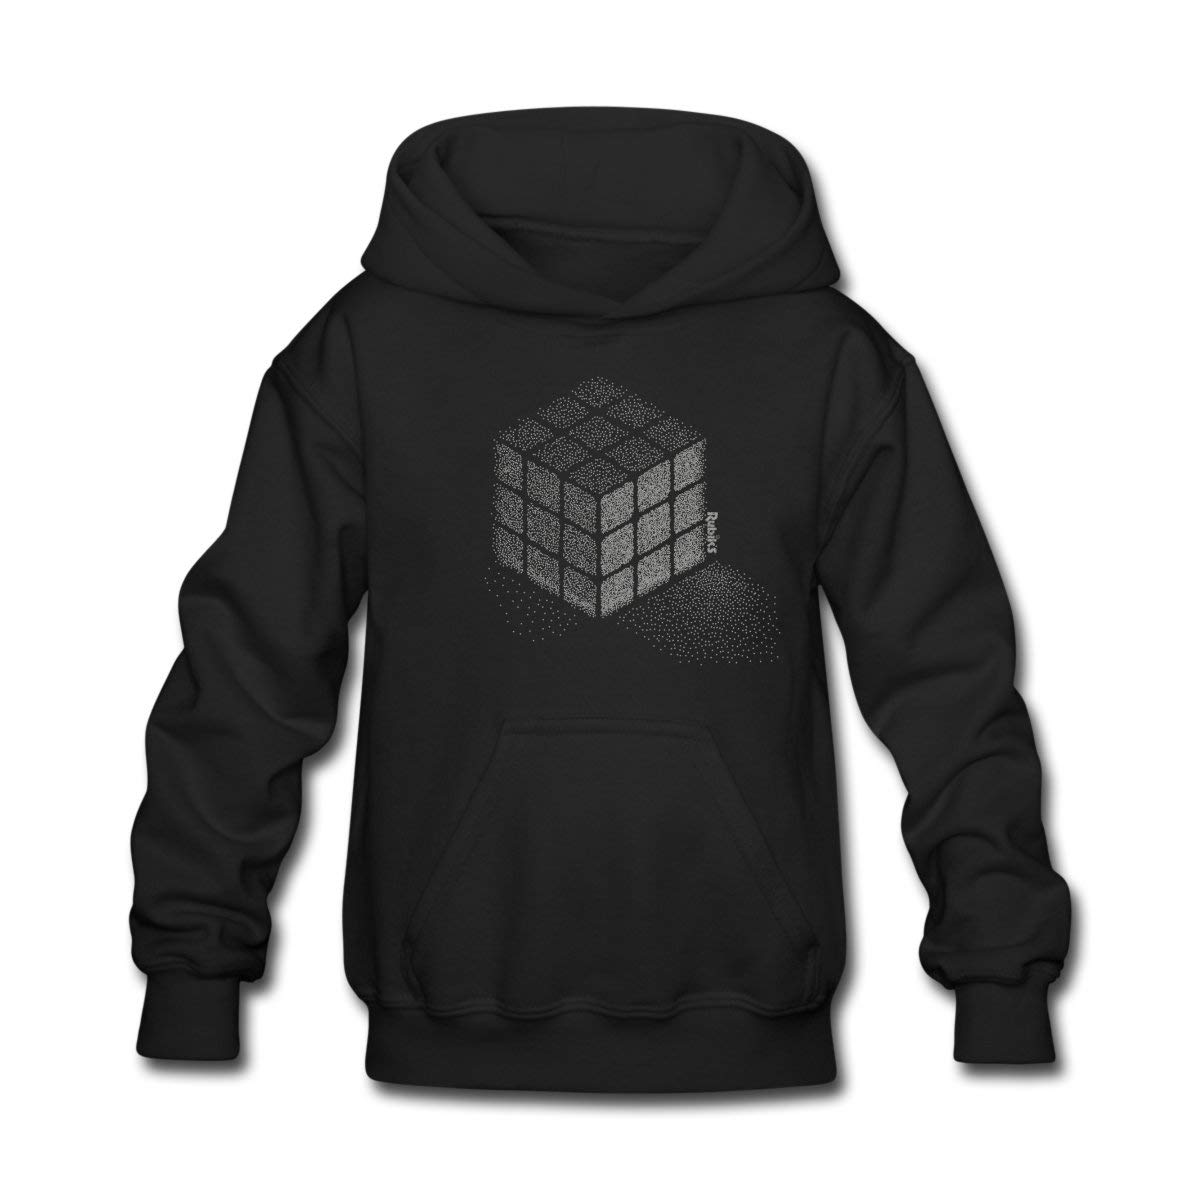 Amazon.com: Rubiks Cube Stippling Dotted Cube Kids Hoodie ...